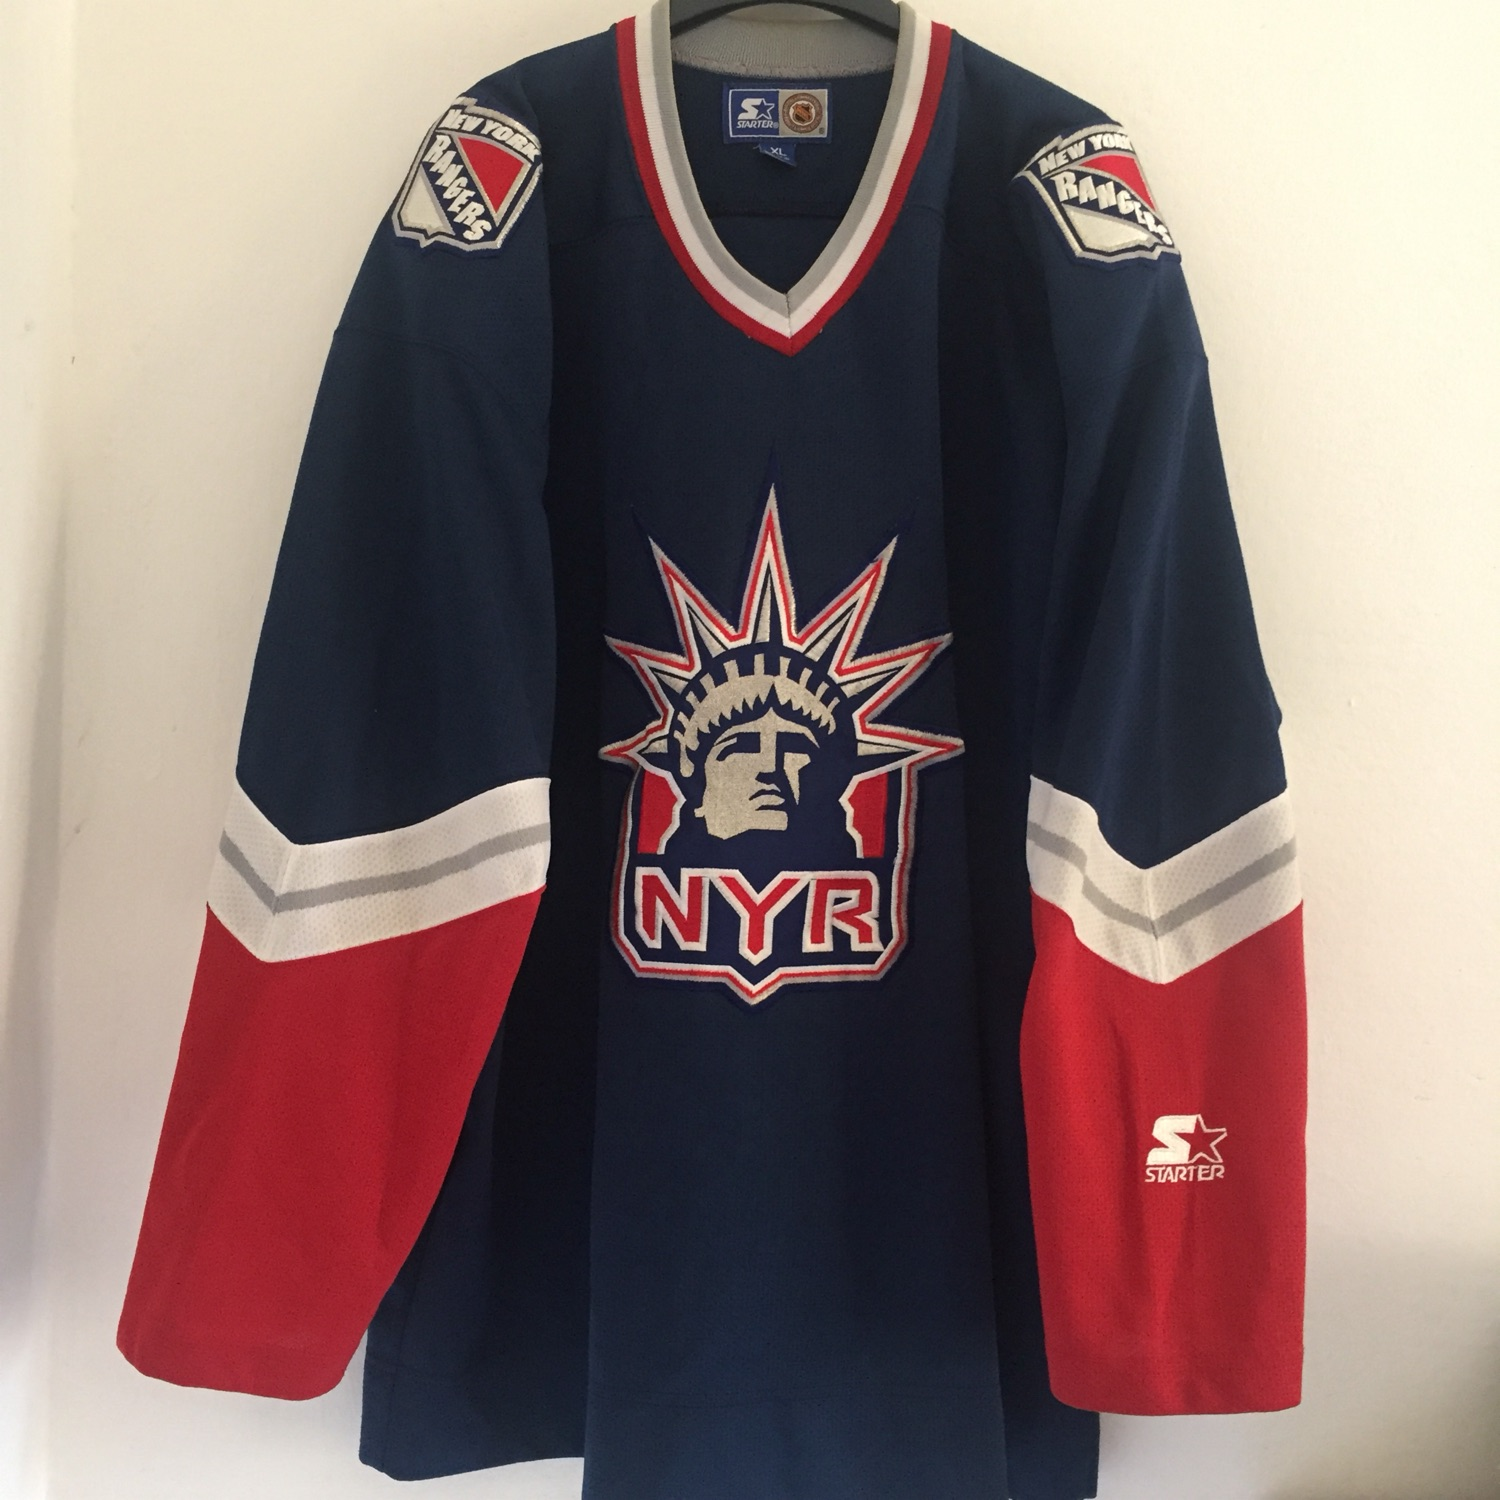 on sale 2b7ce aa5a6 Jersey New York Rangers